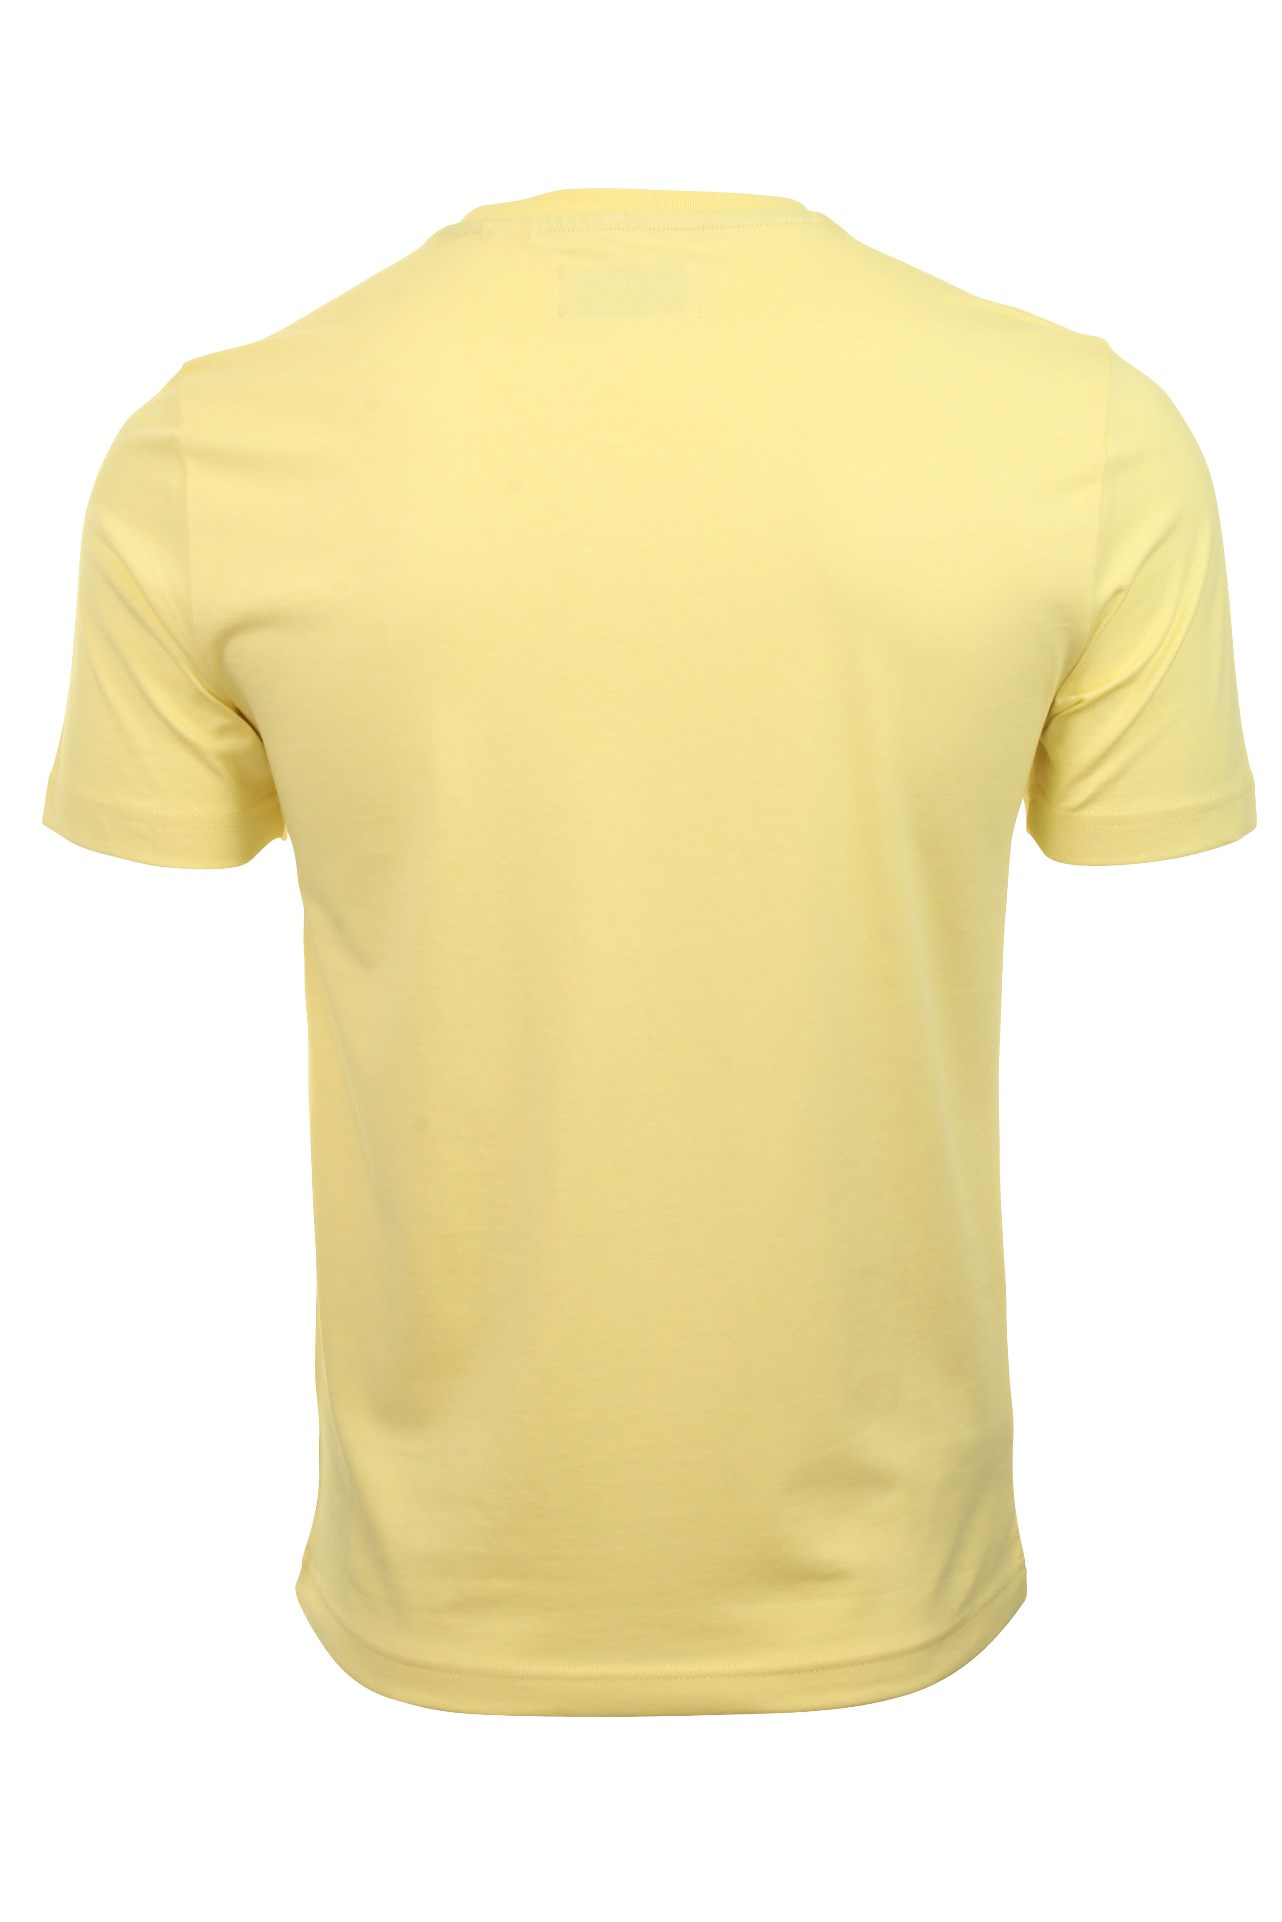 Original-Penguin-Mens-T-Shirt-039-Pin-Point-Embroidered-039-Short-Sleeved thumbnail 23